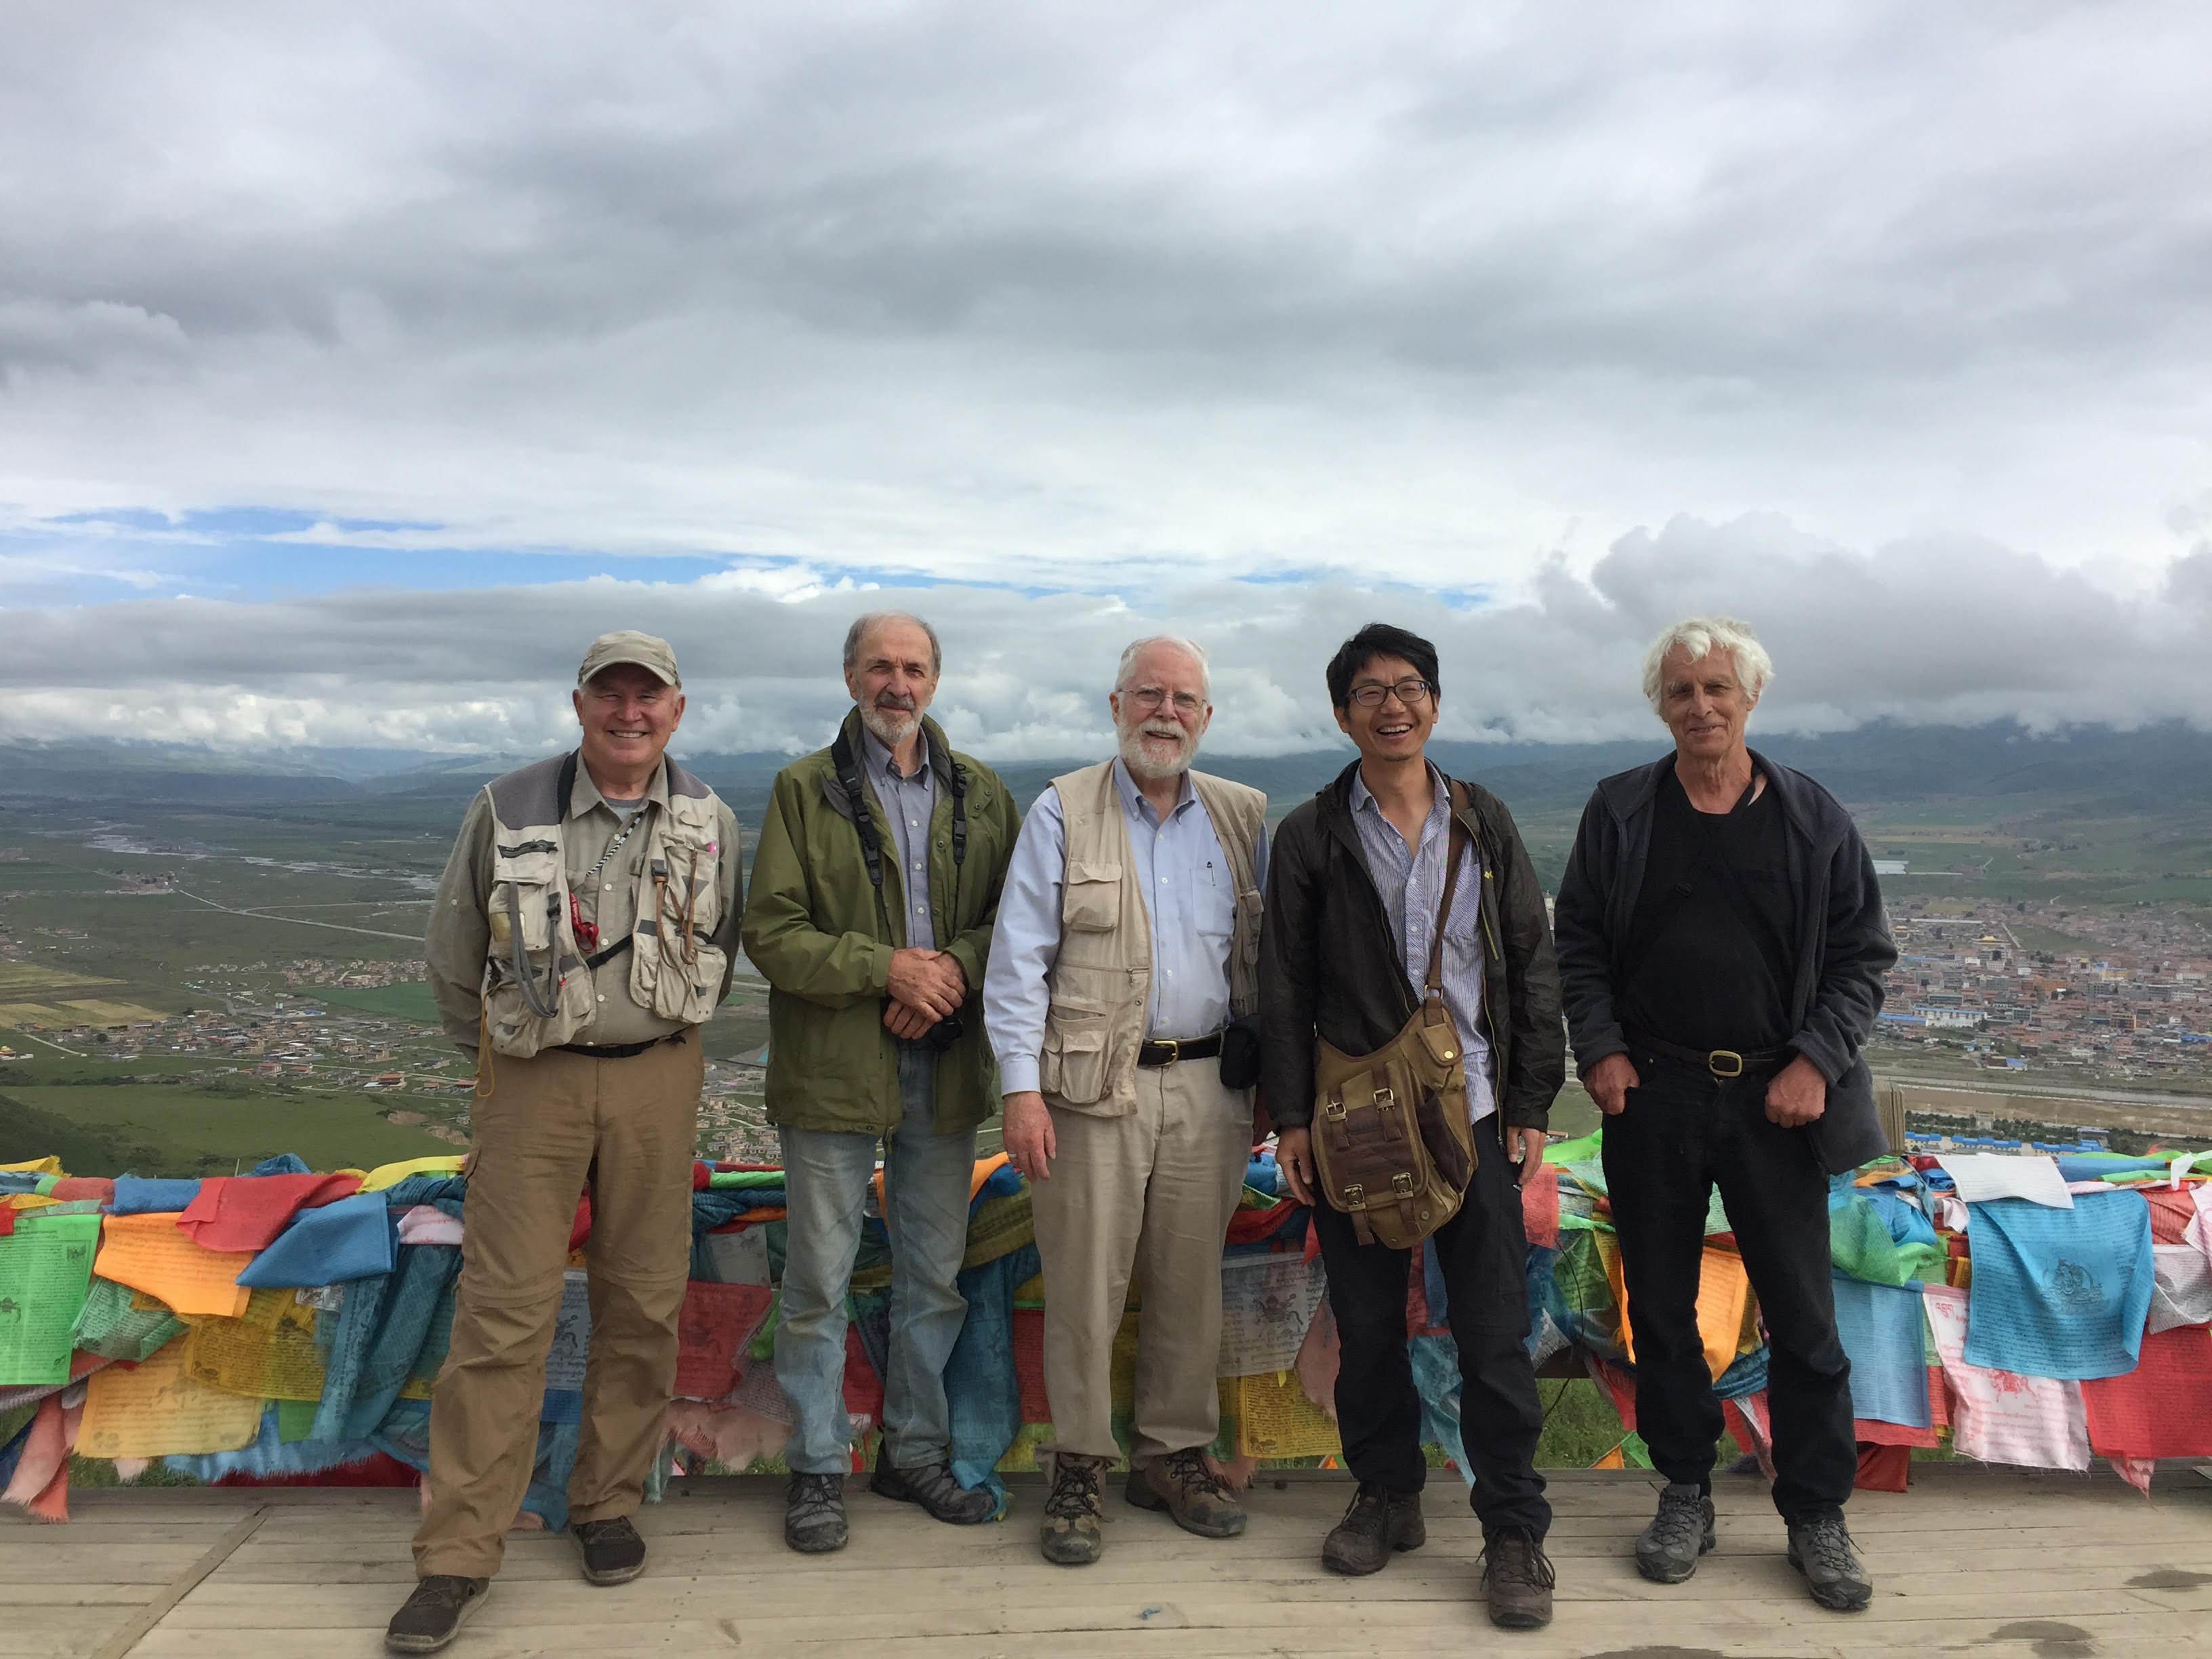 2018 Expedition team: Sichuan Province, Aba Xian, outside the city of Aba (in background)